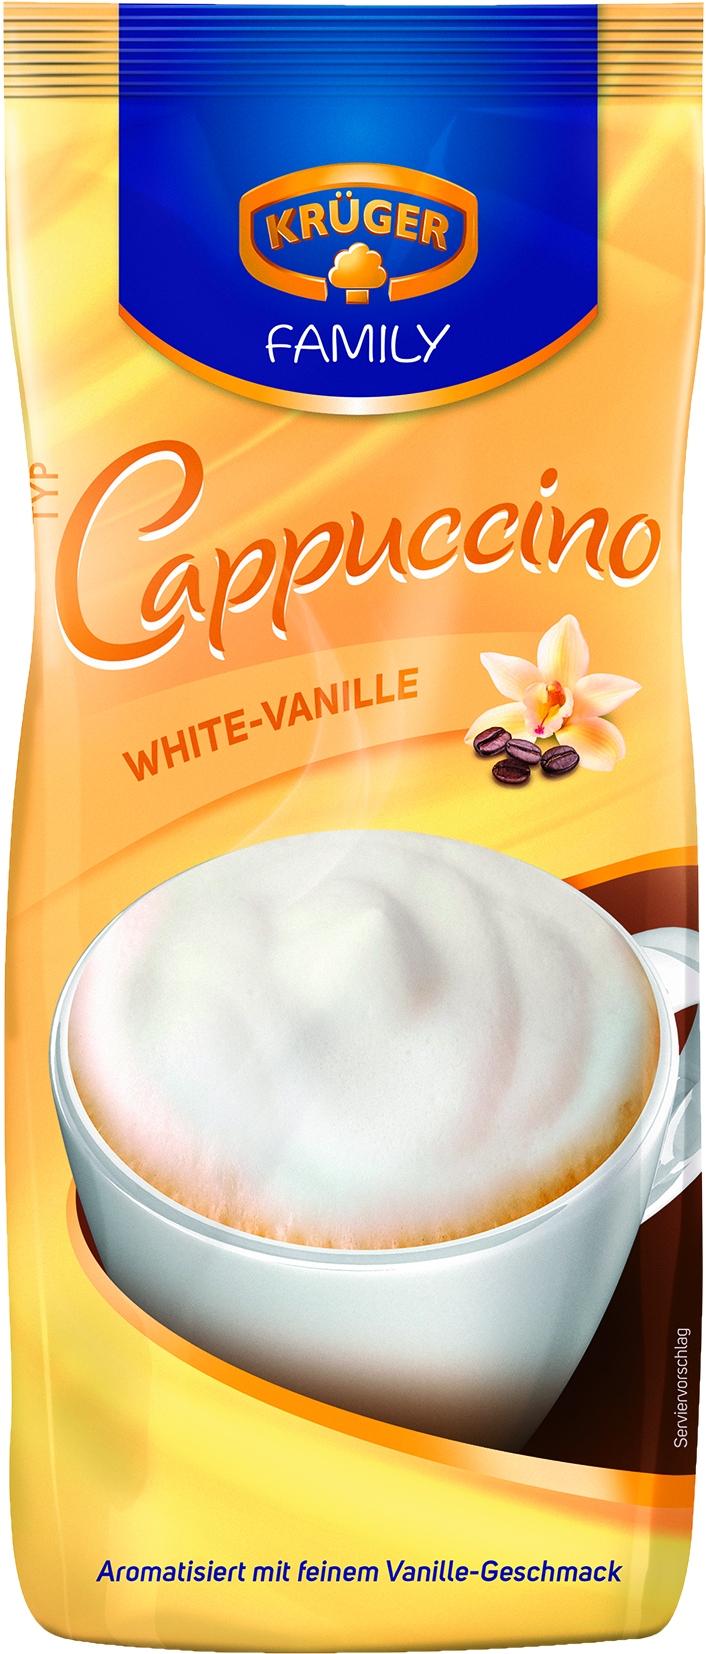 Family Cappuccino White